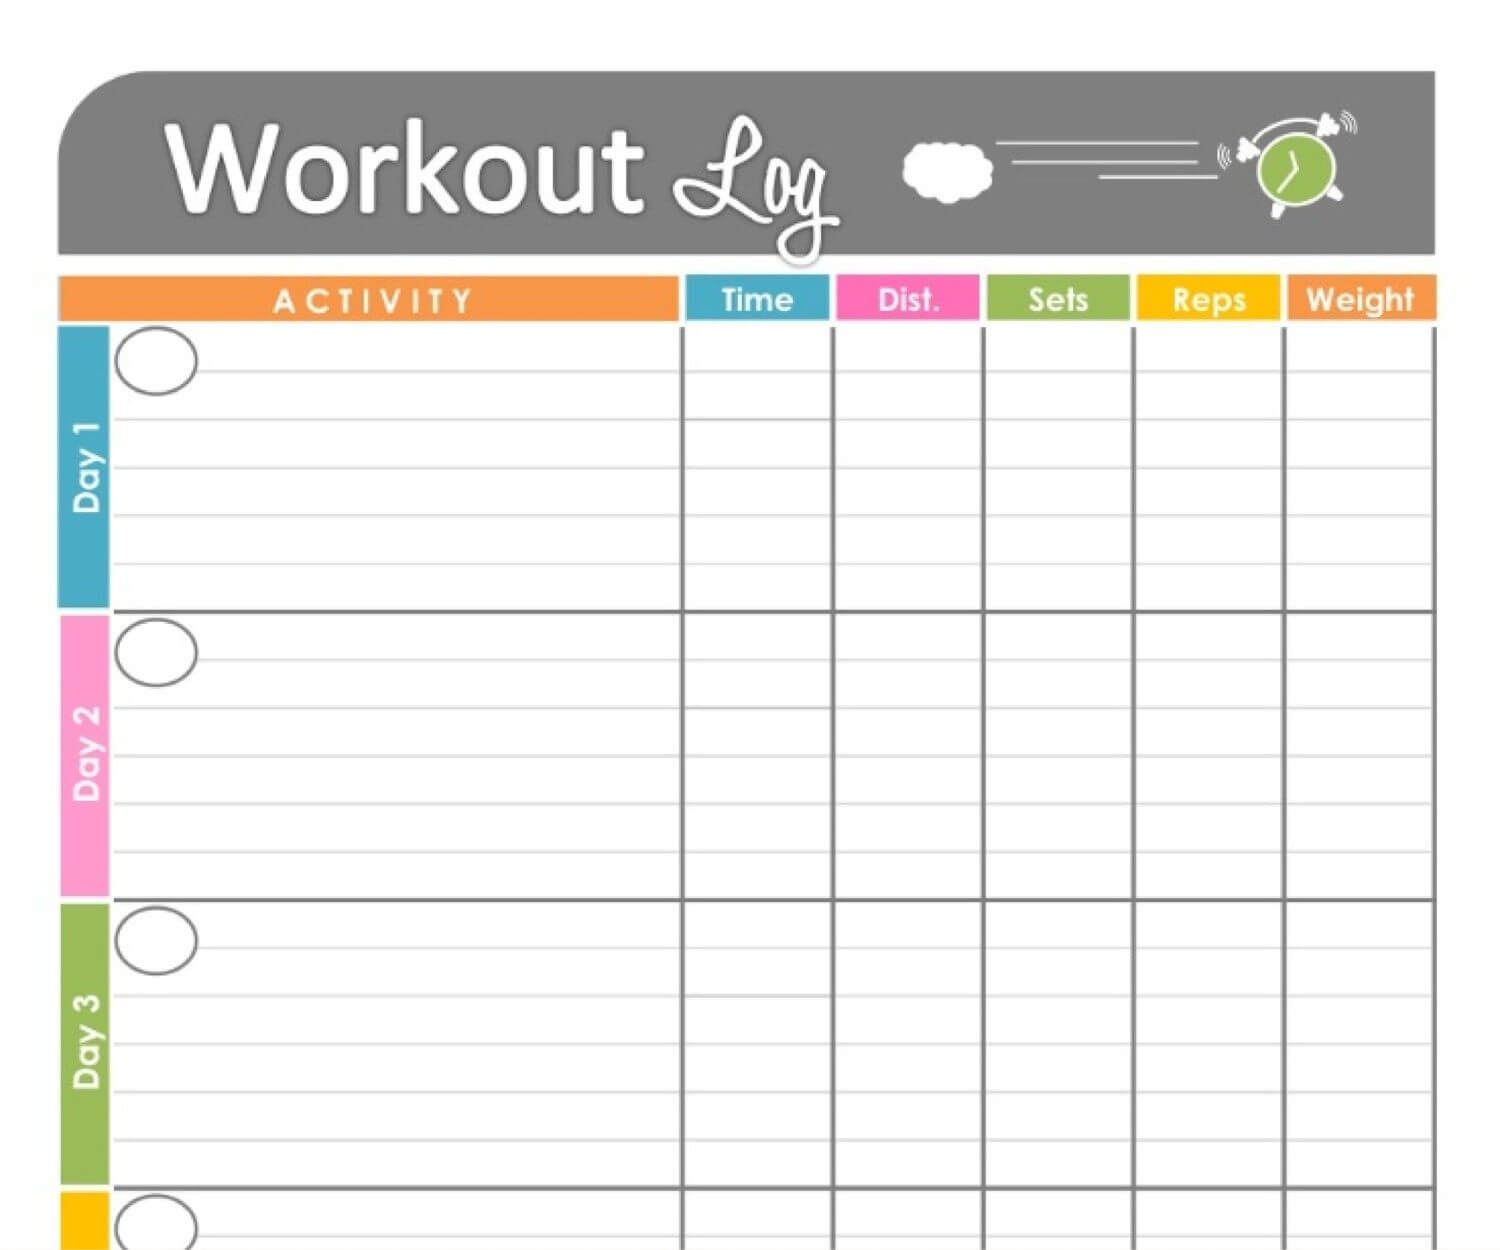 Pinkristy Winburn-Revels On School Planners & Supplies with Blank Workout Schedule Template